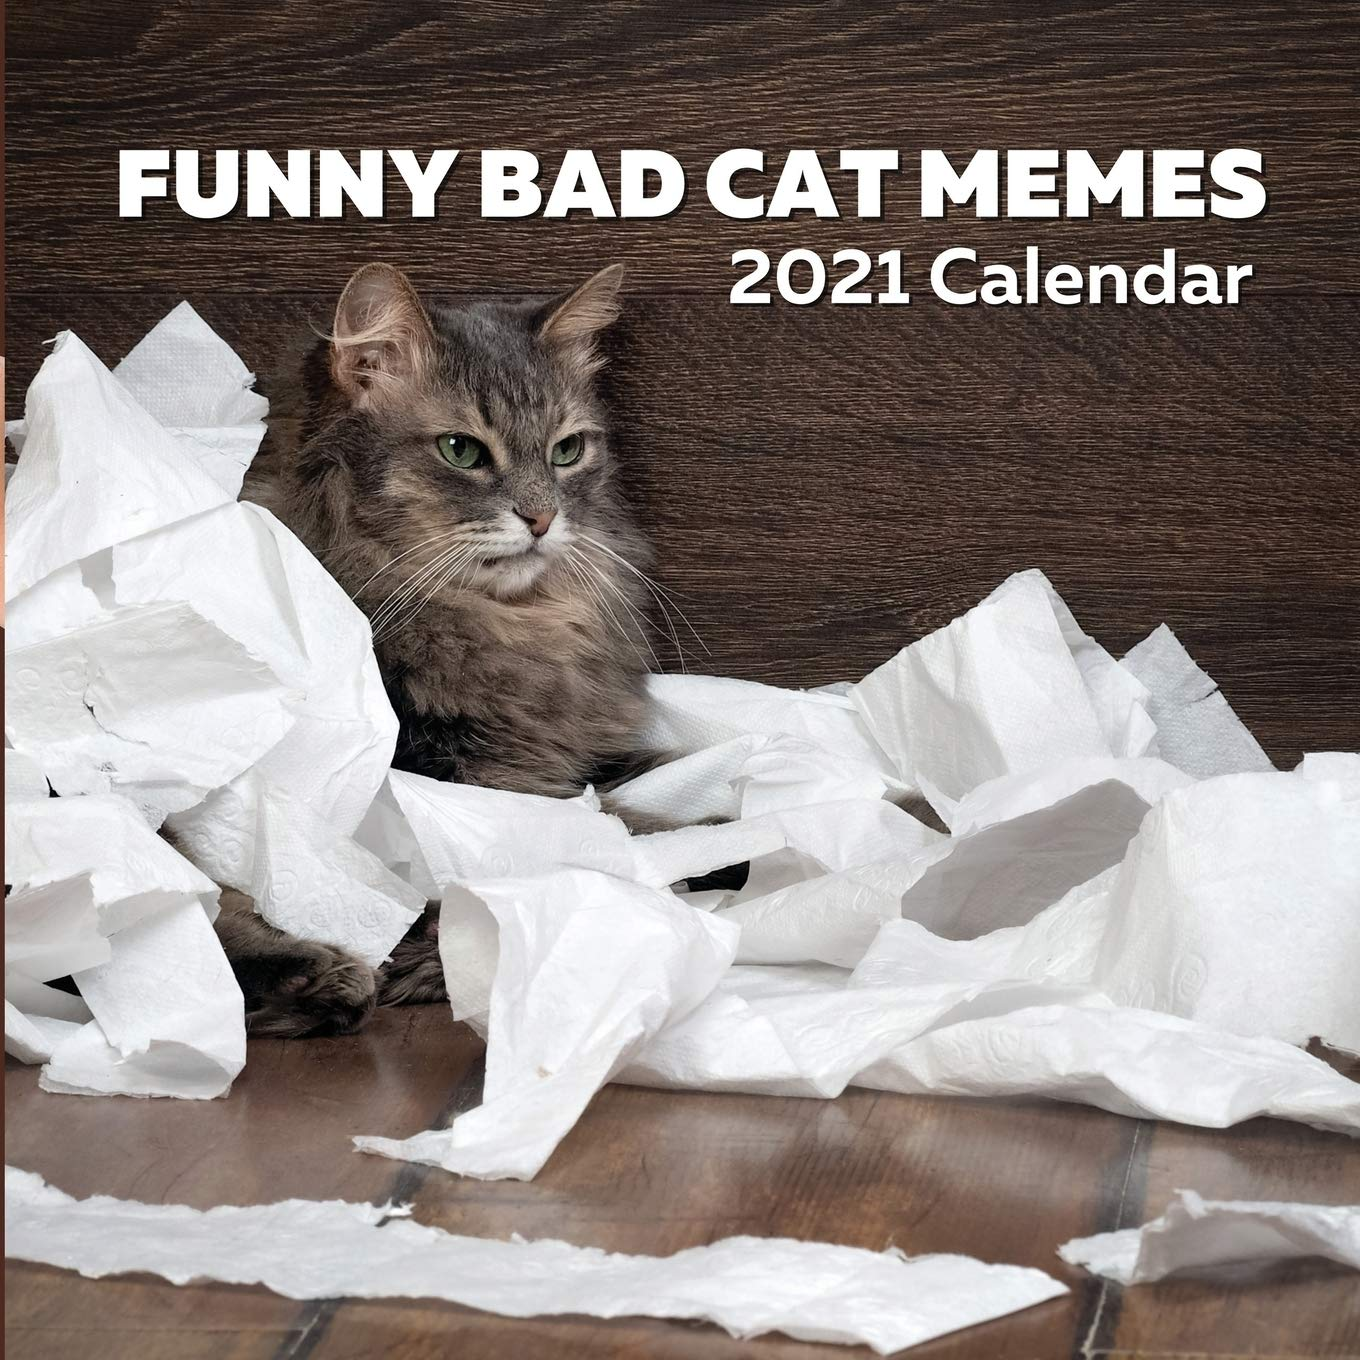 Funny Bad Cat Memes 2021 Calendar Hicks Shimmer 9798694978781 Amazon Com Books As far as we can tell, nothing has changed. funny bad cat memes 2021 calendar